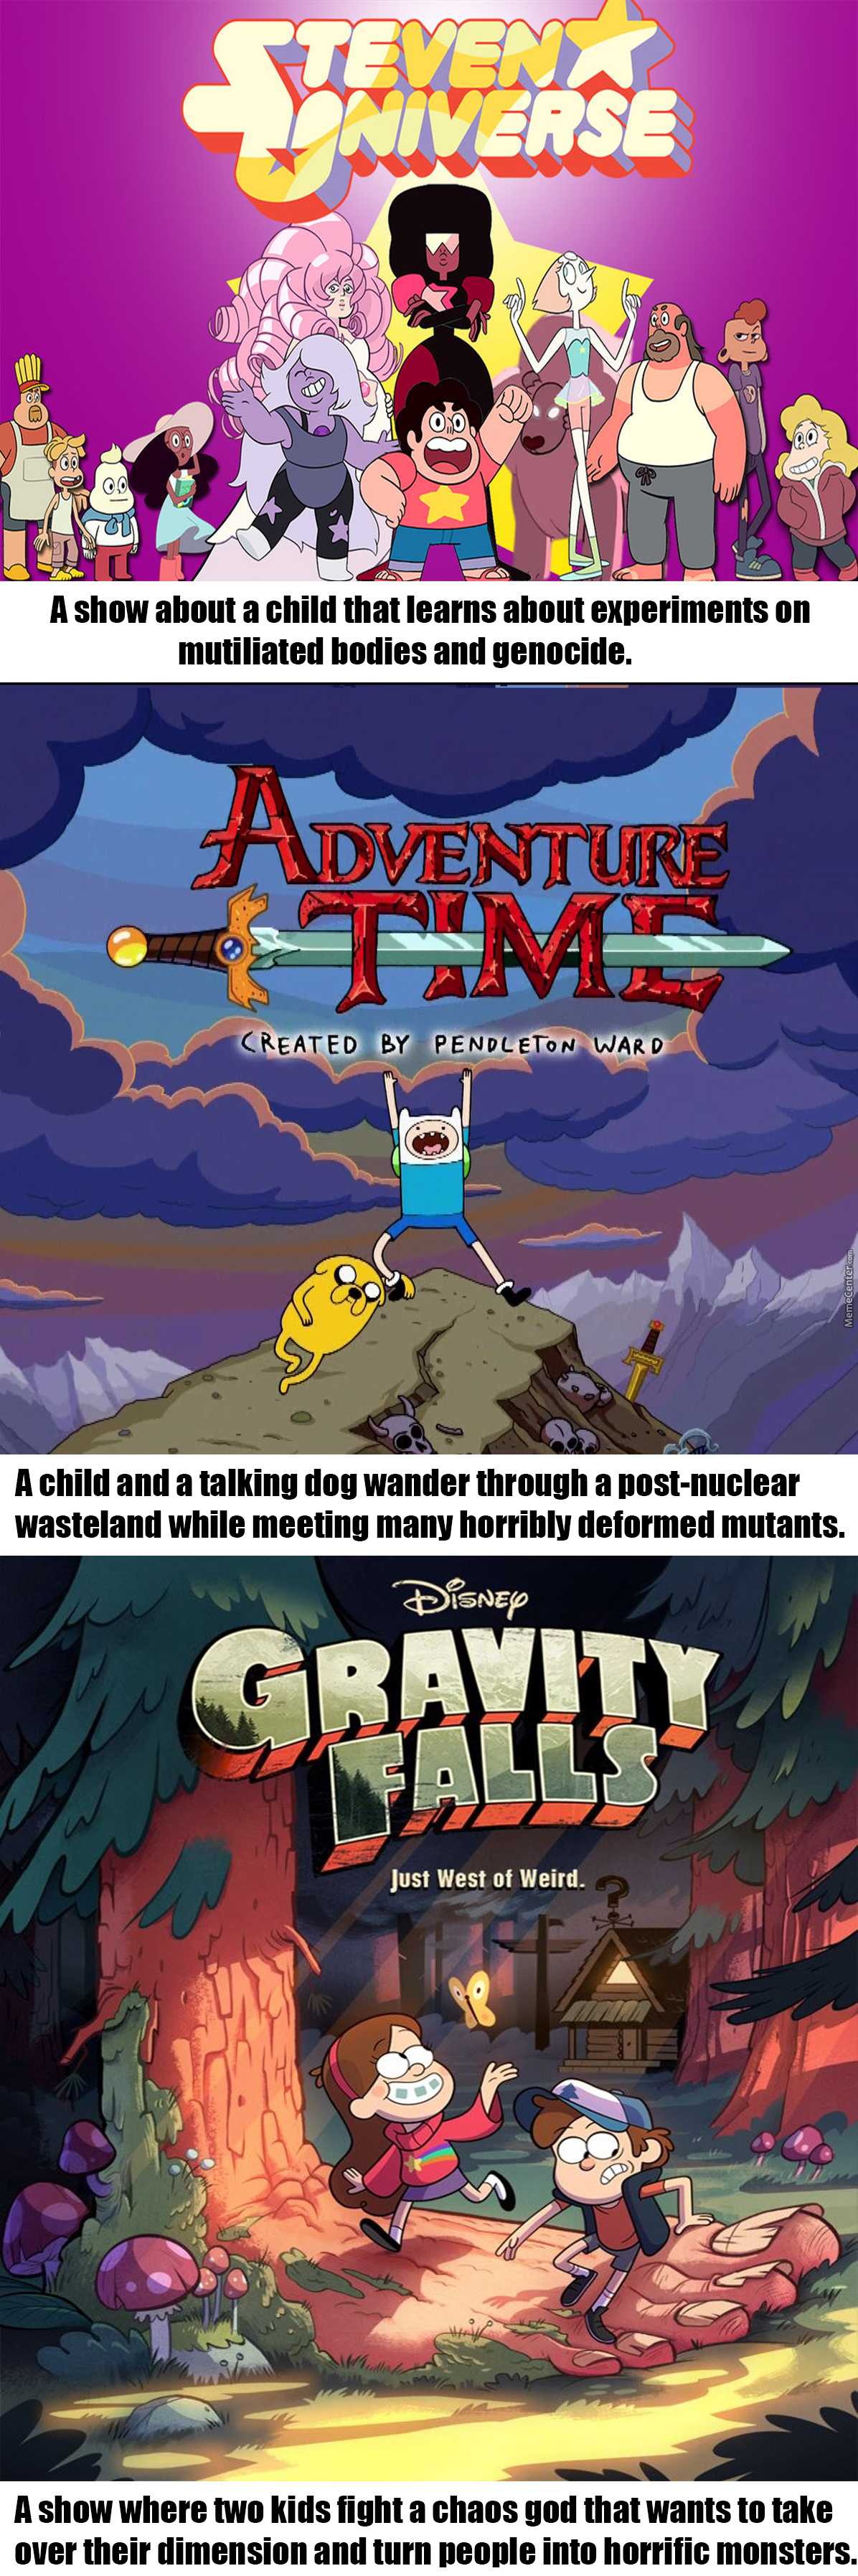 Well, When You Think About It These Shows Are Pretty Dark